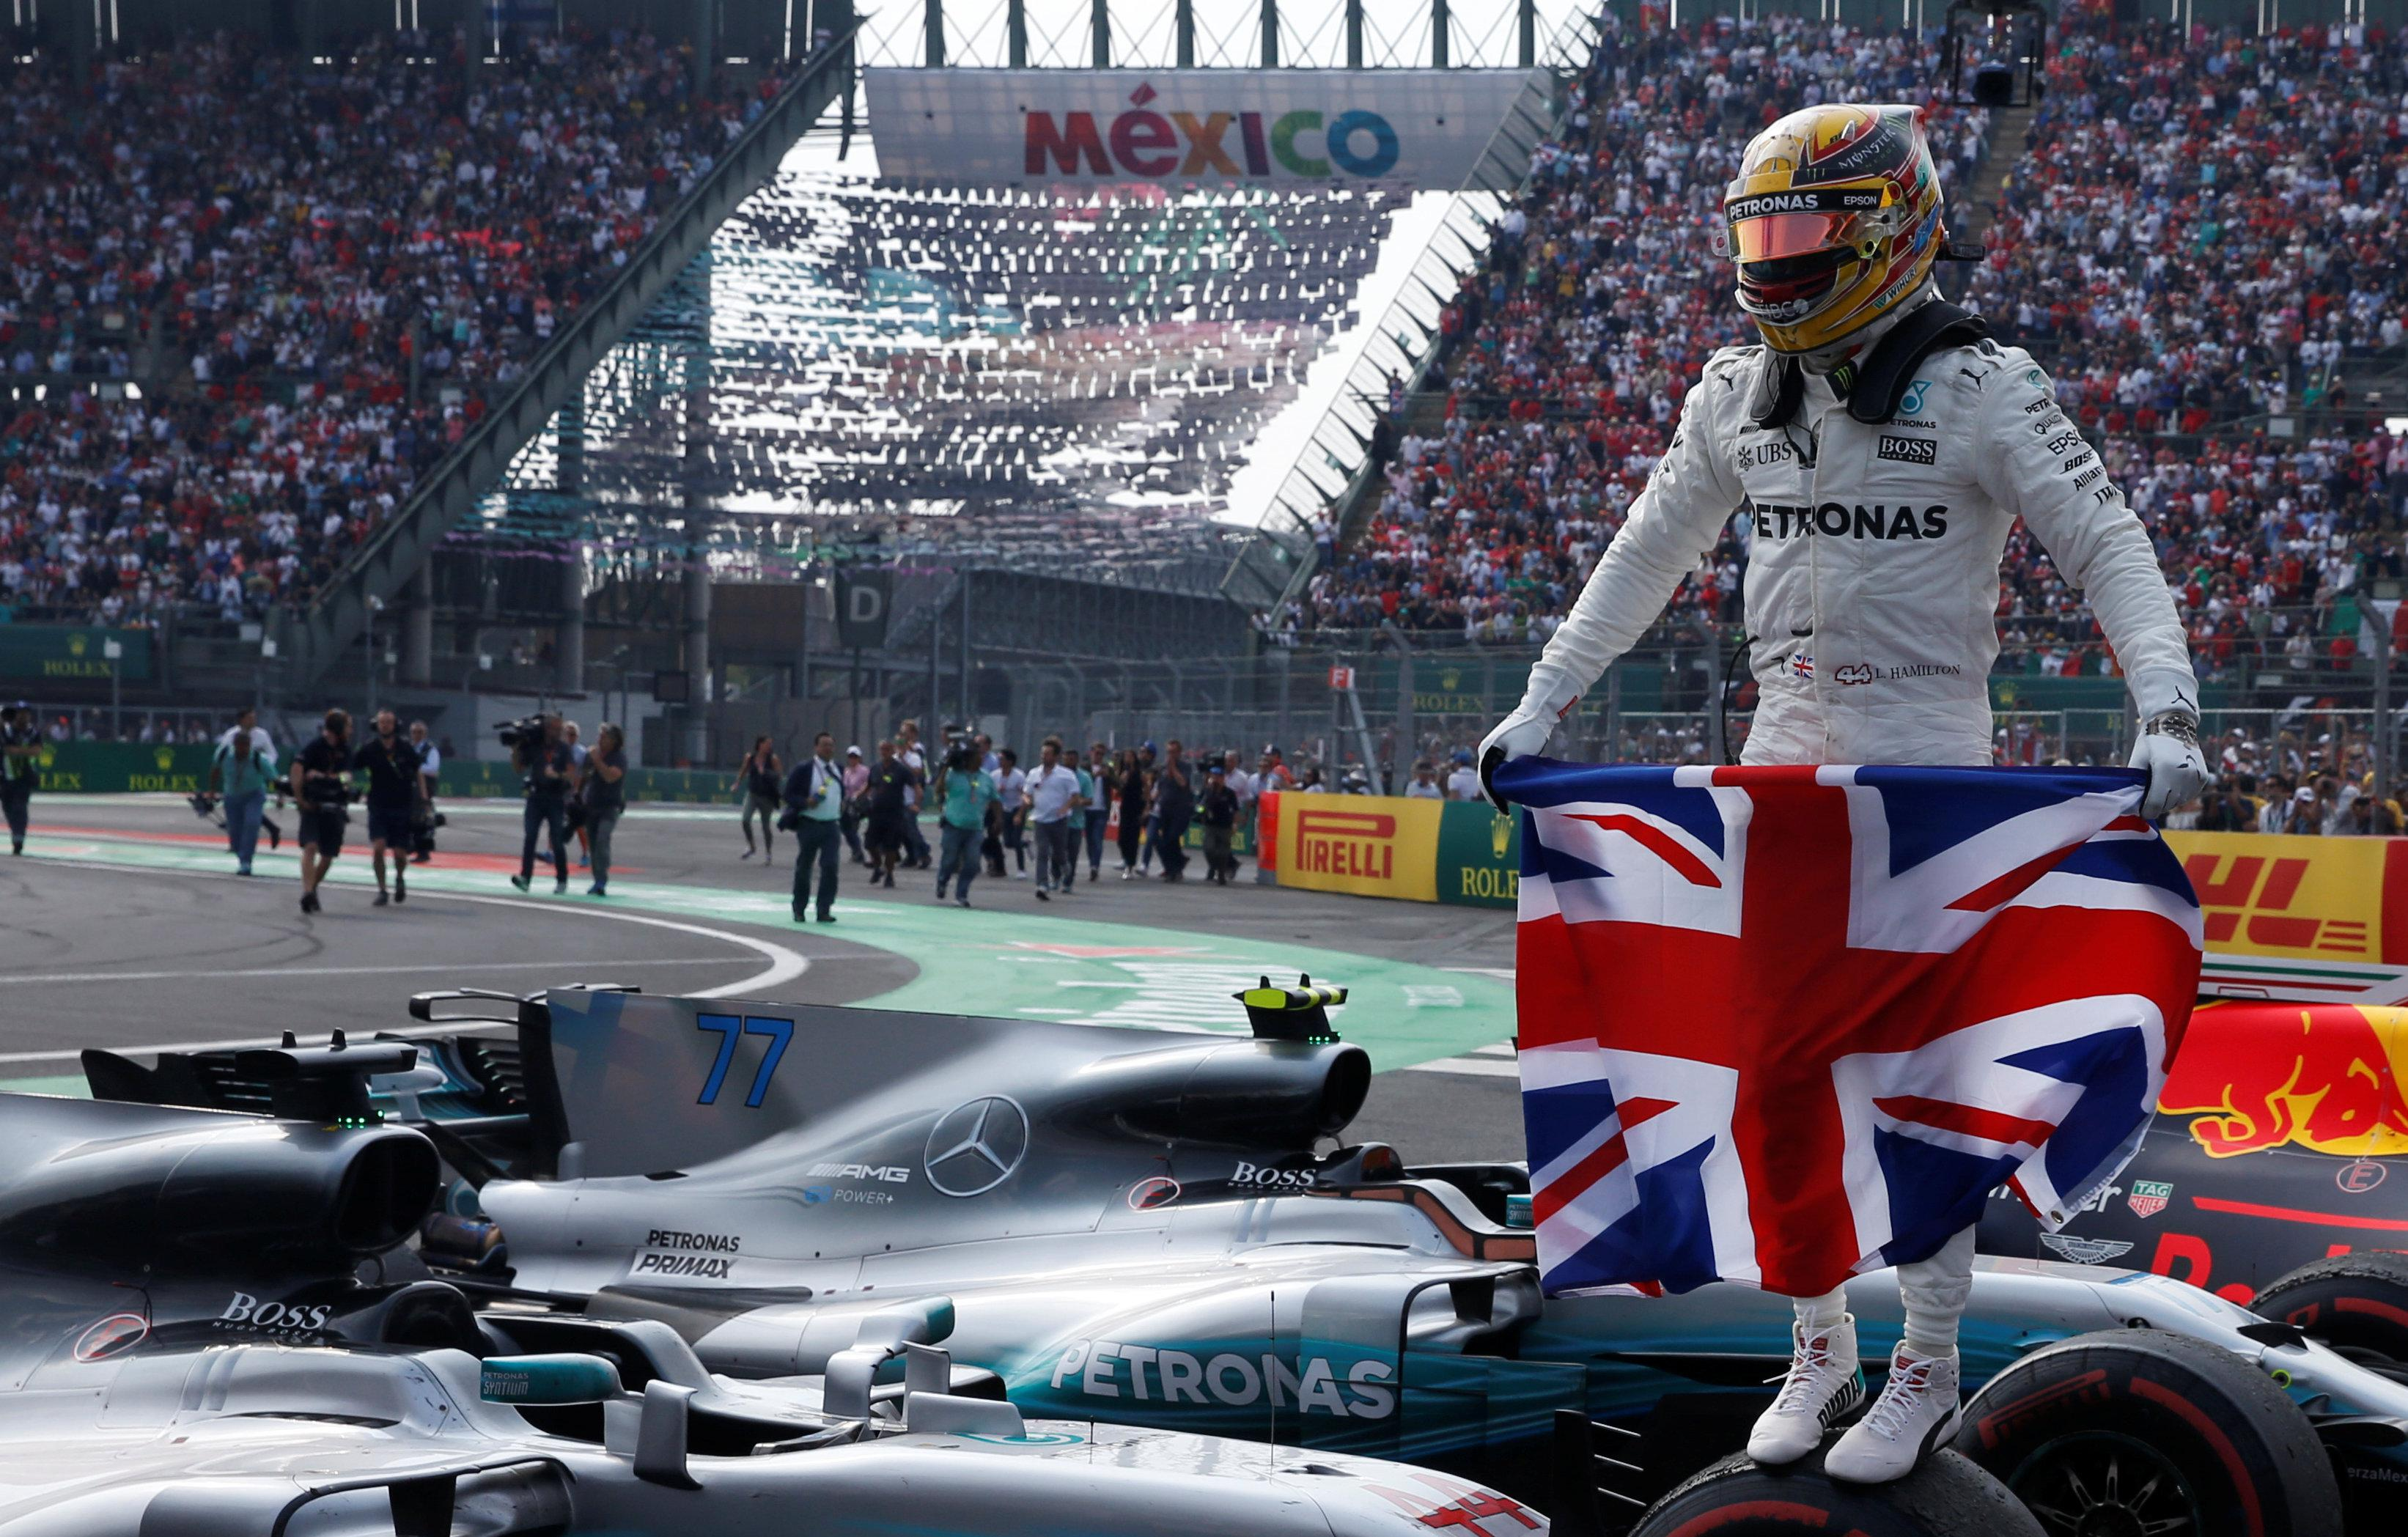 The Brit superstar was crowned king of the F1 world in Mexico City